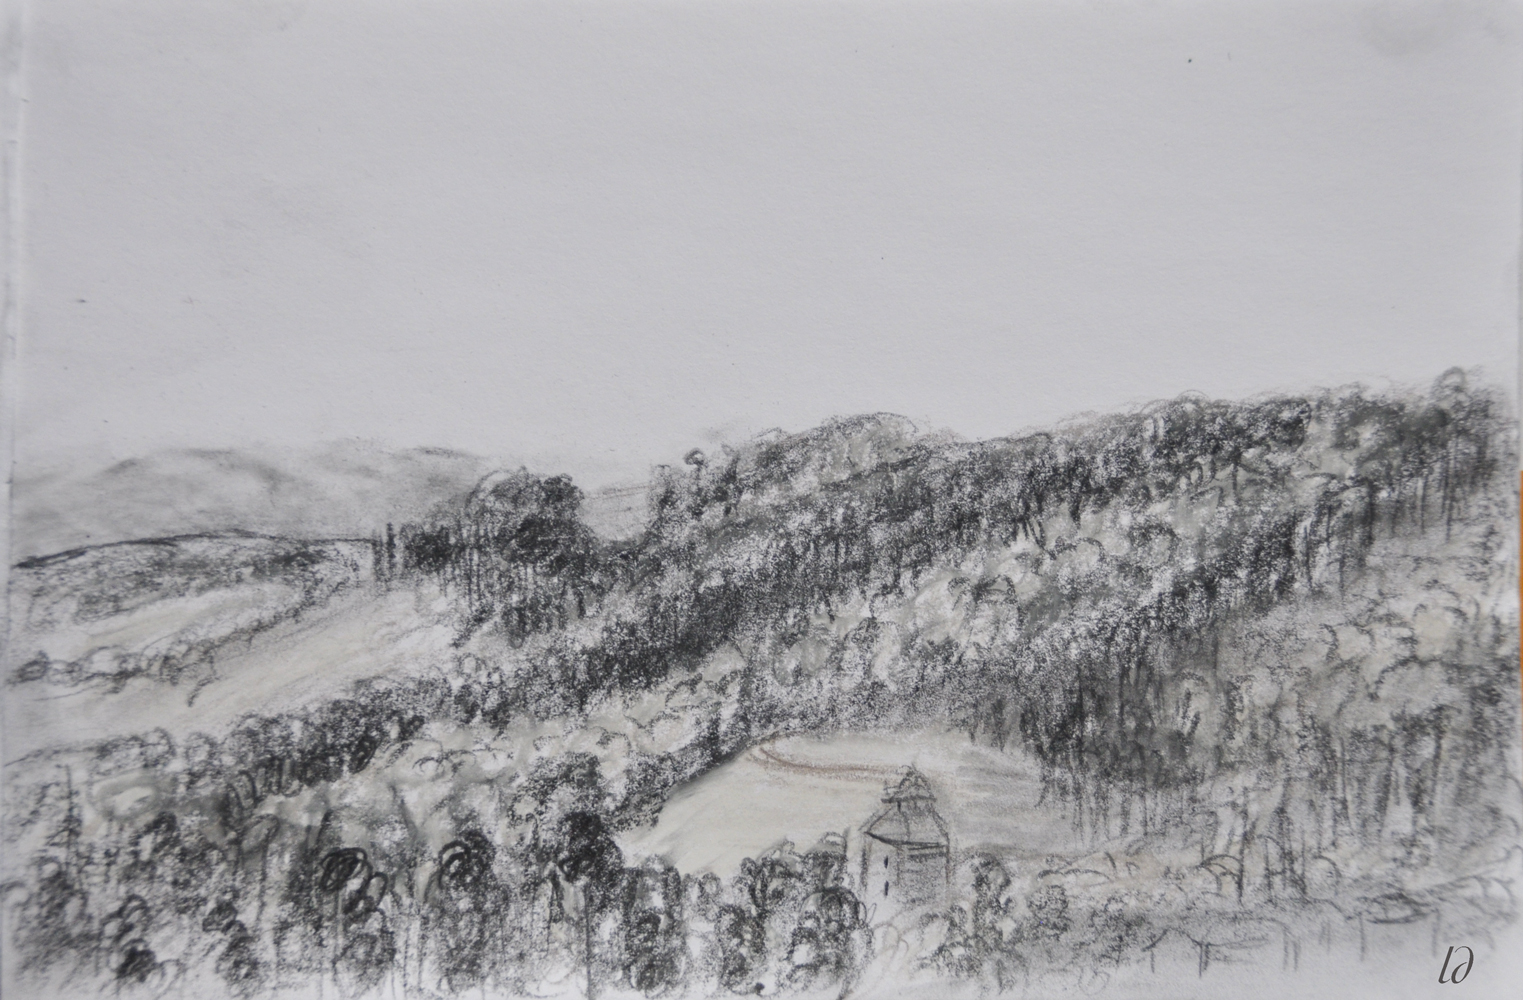 Hill, Penthalaz. Crayon on paper, 16x24, 2017